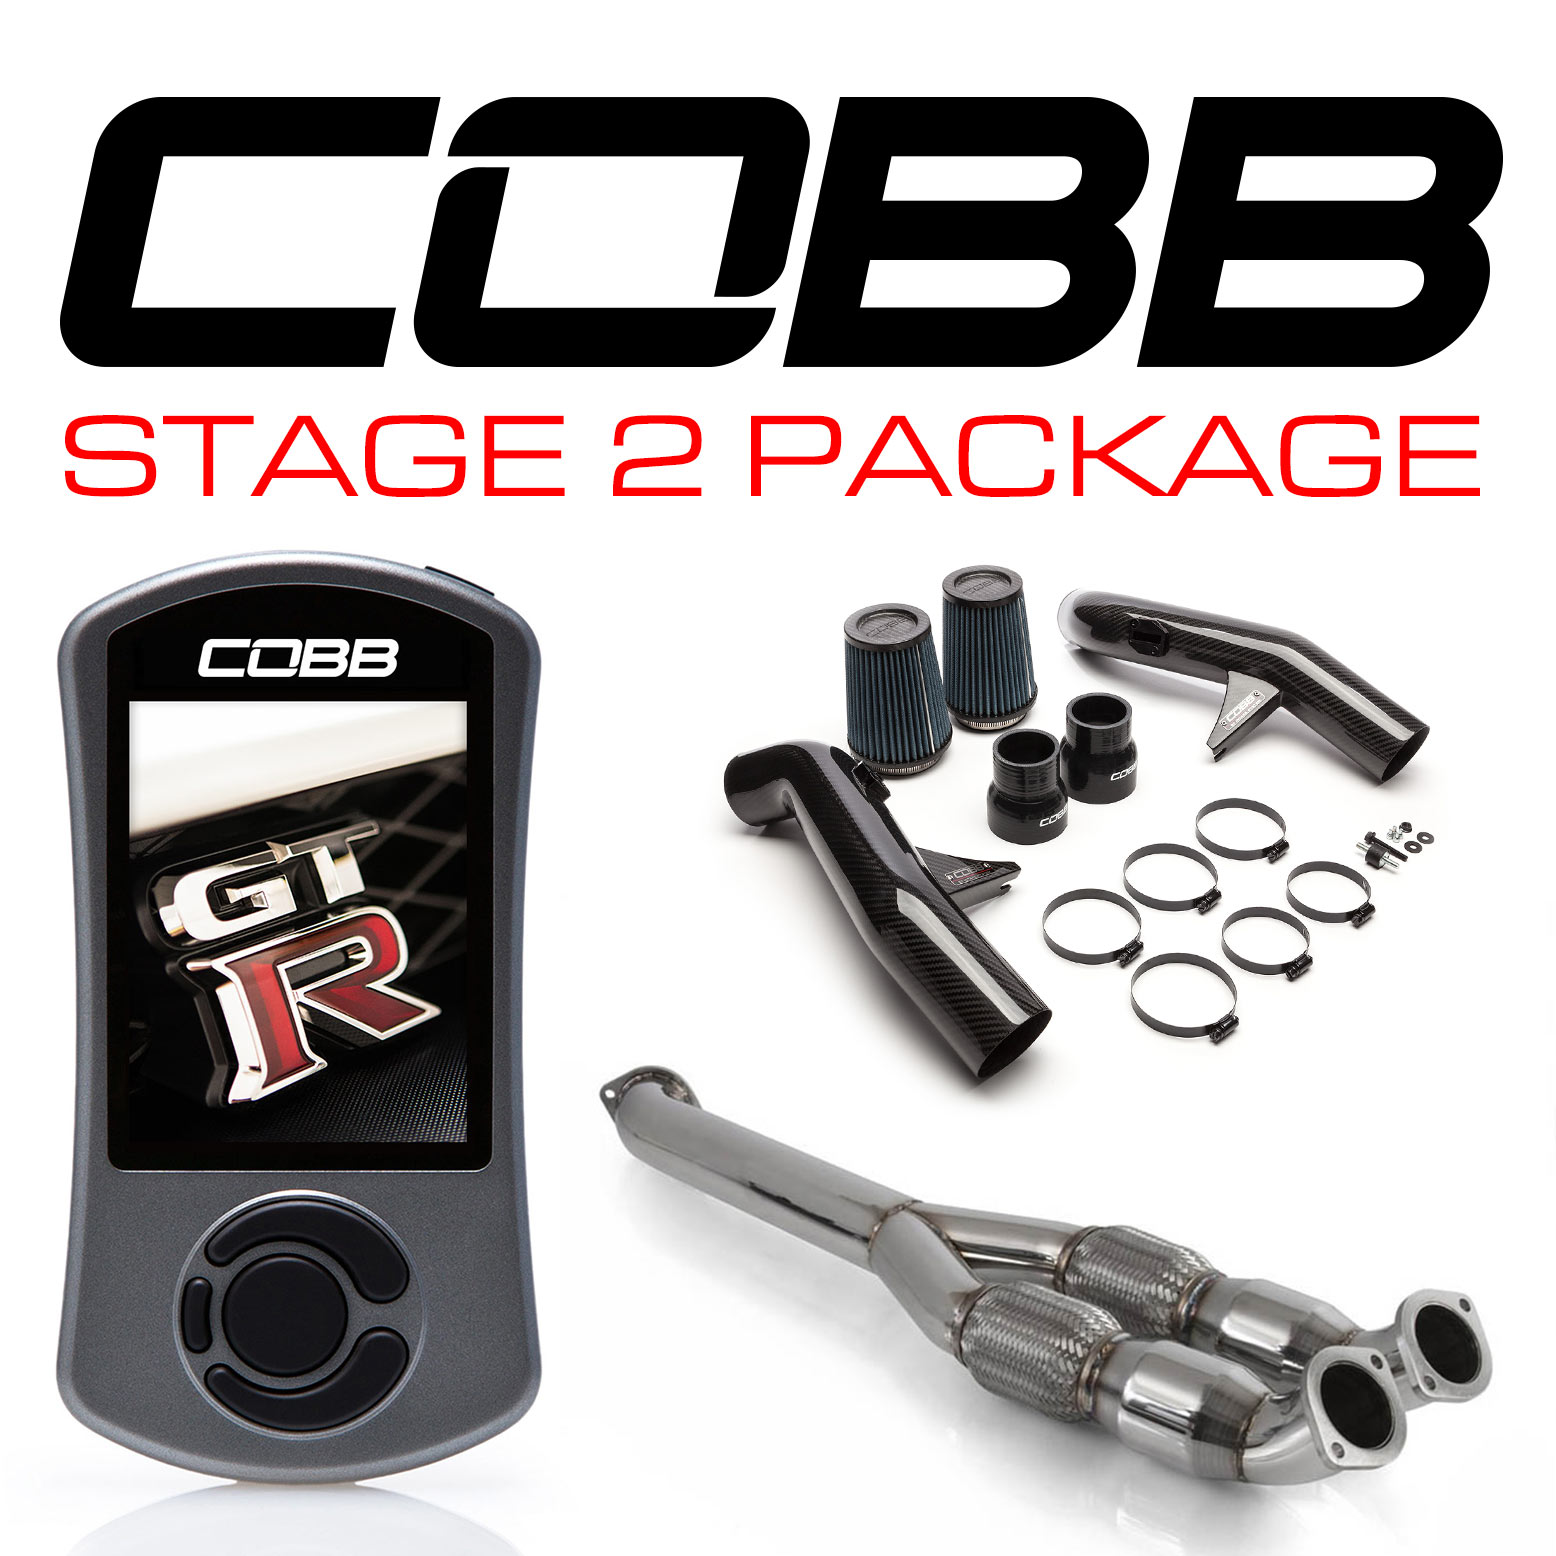 Nissan GT-R Stage 2 Carbon Fiber Power Package NIS-008 with TCM Flashing